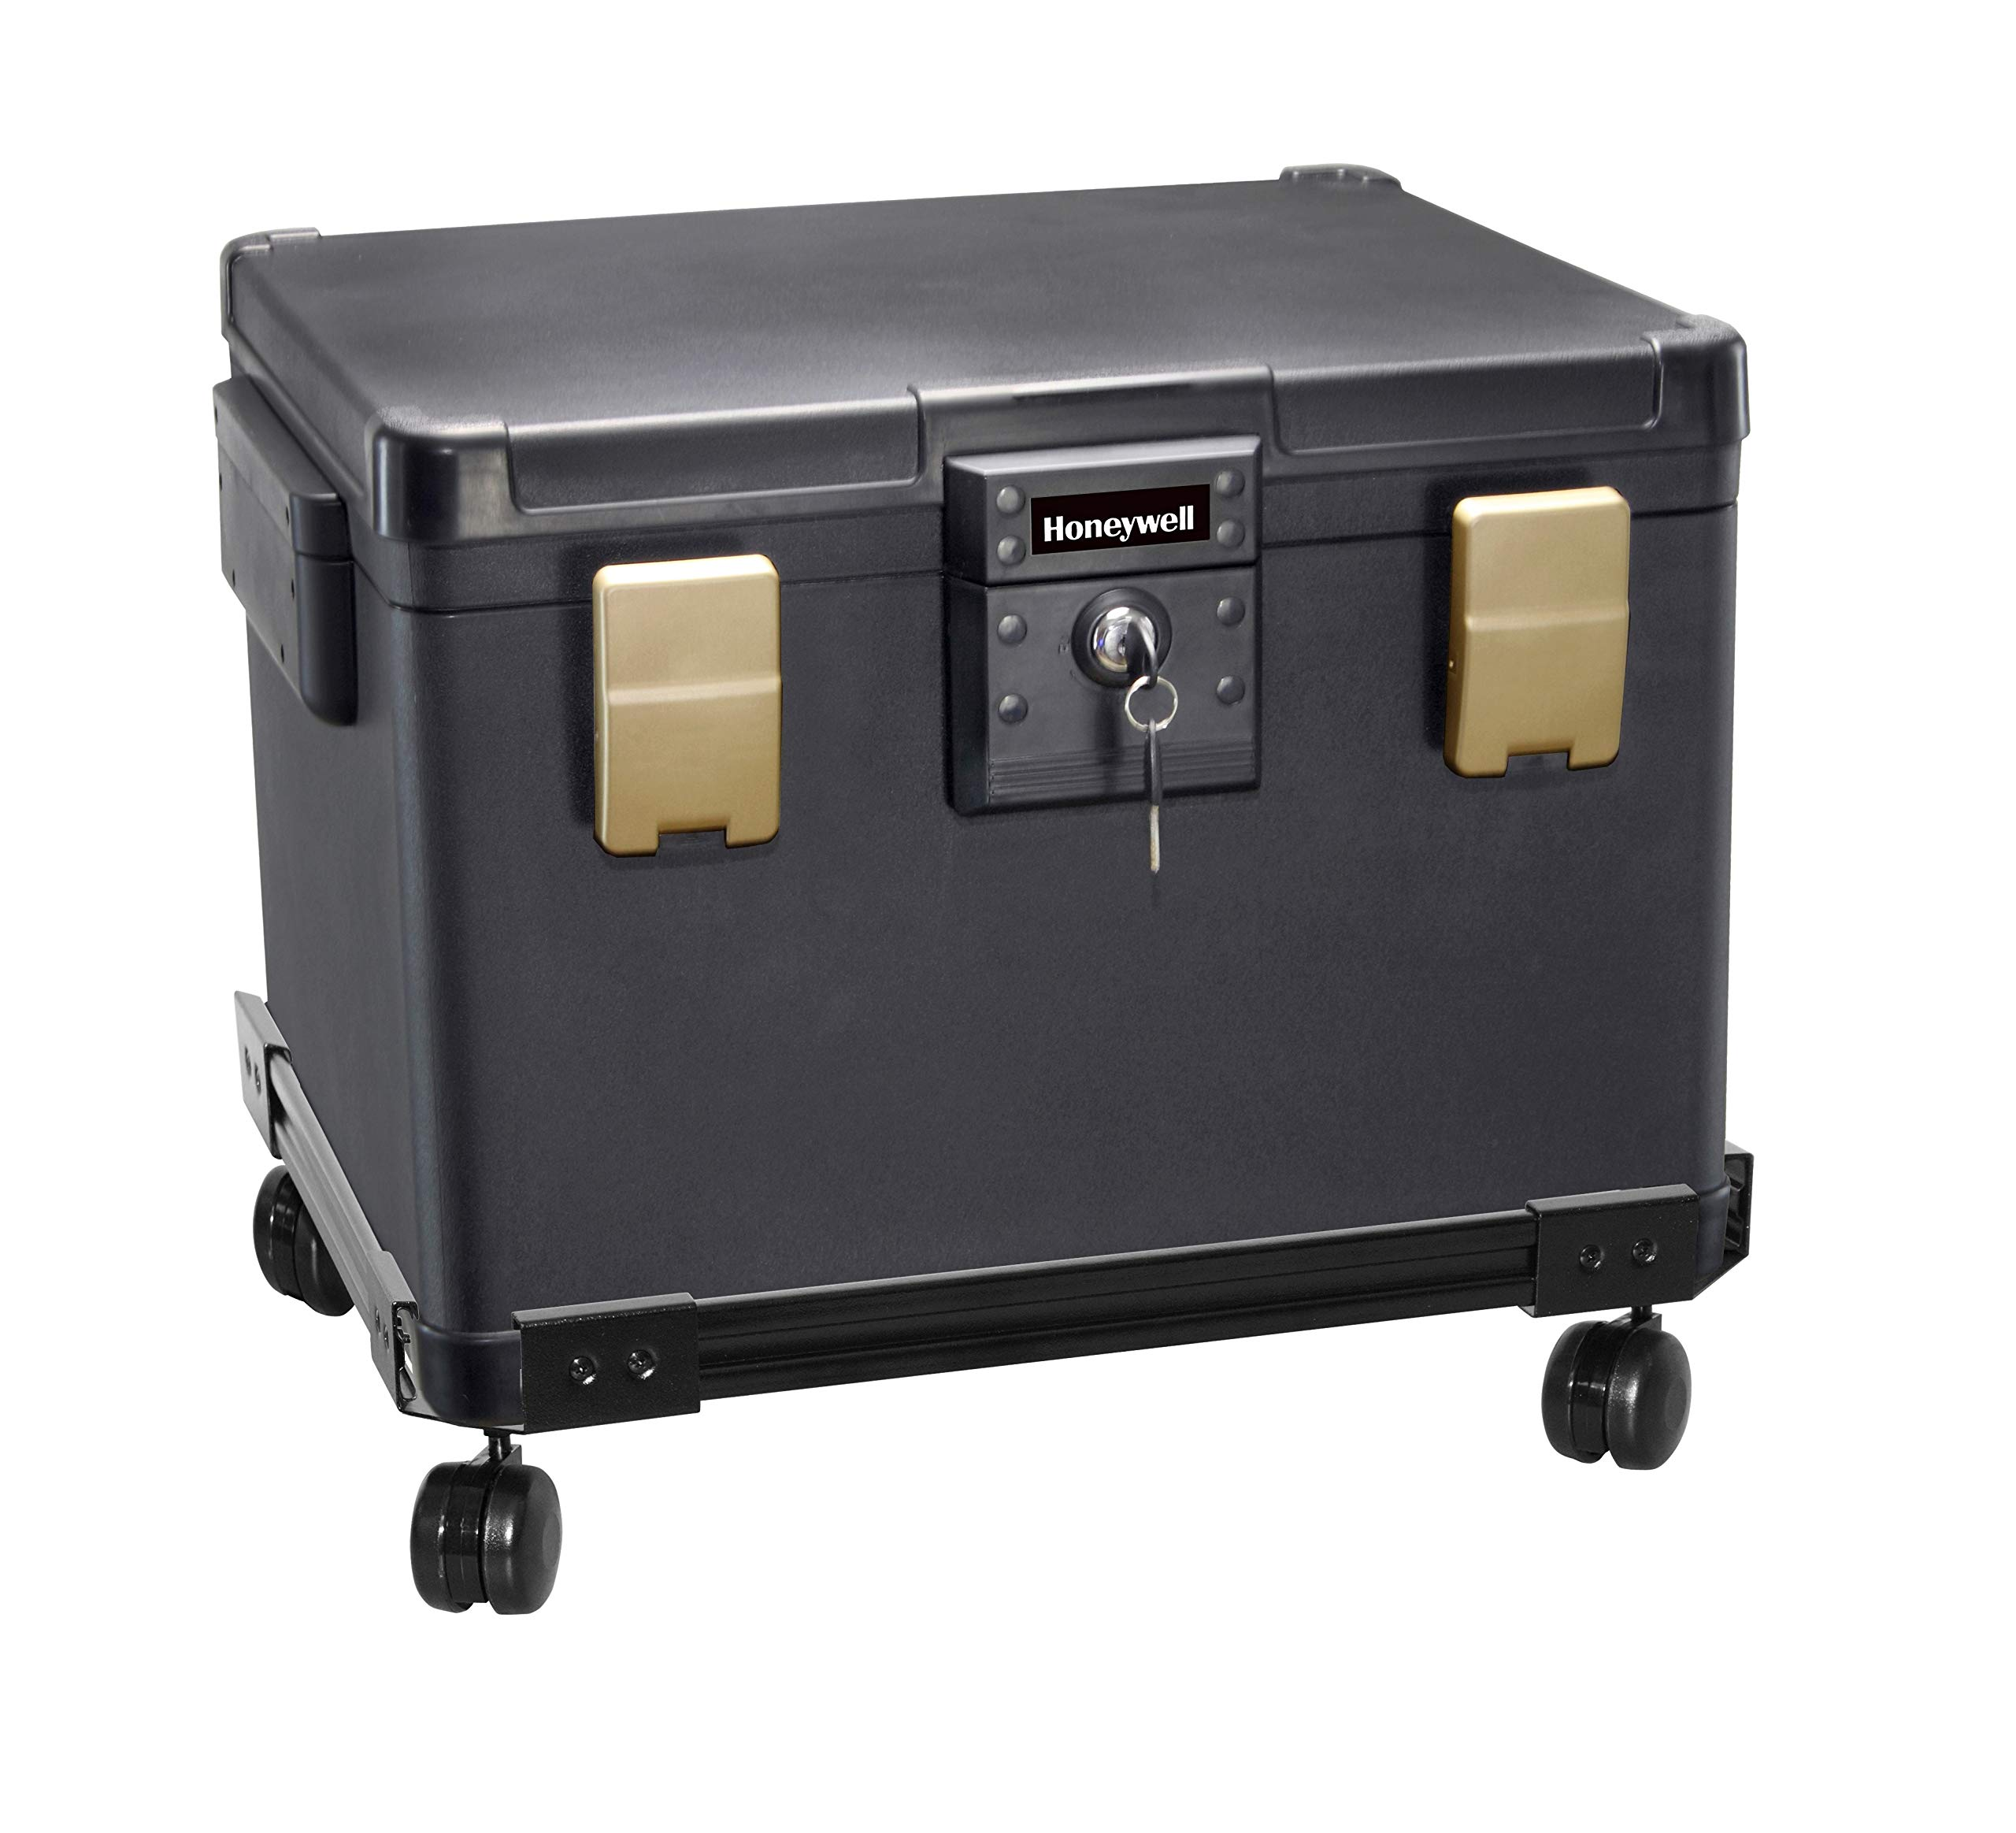 Honeywell Safes & Door Locks 1112W Honeywell Safe Box, Black by Honeywell Safes & Door Locks